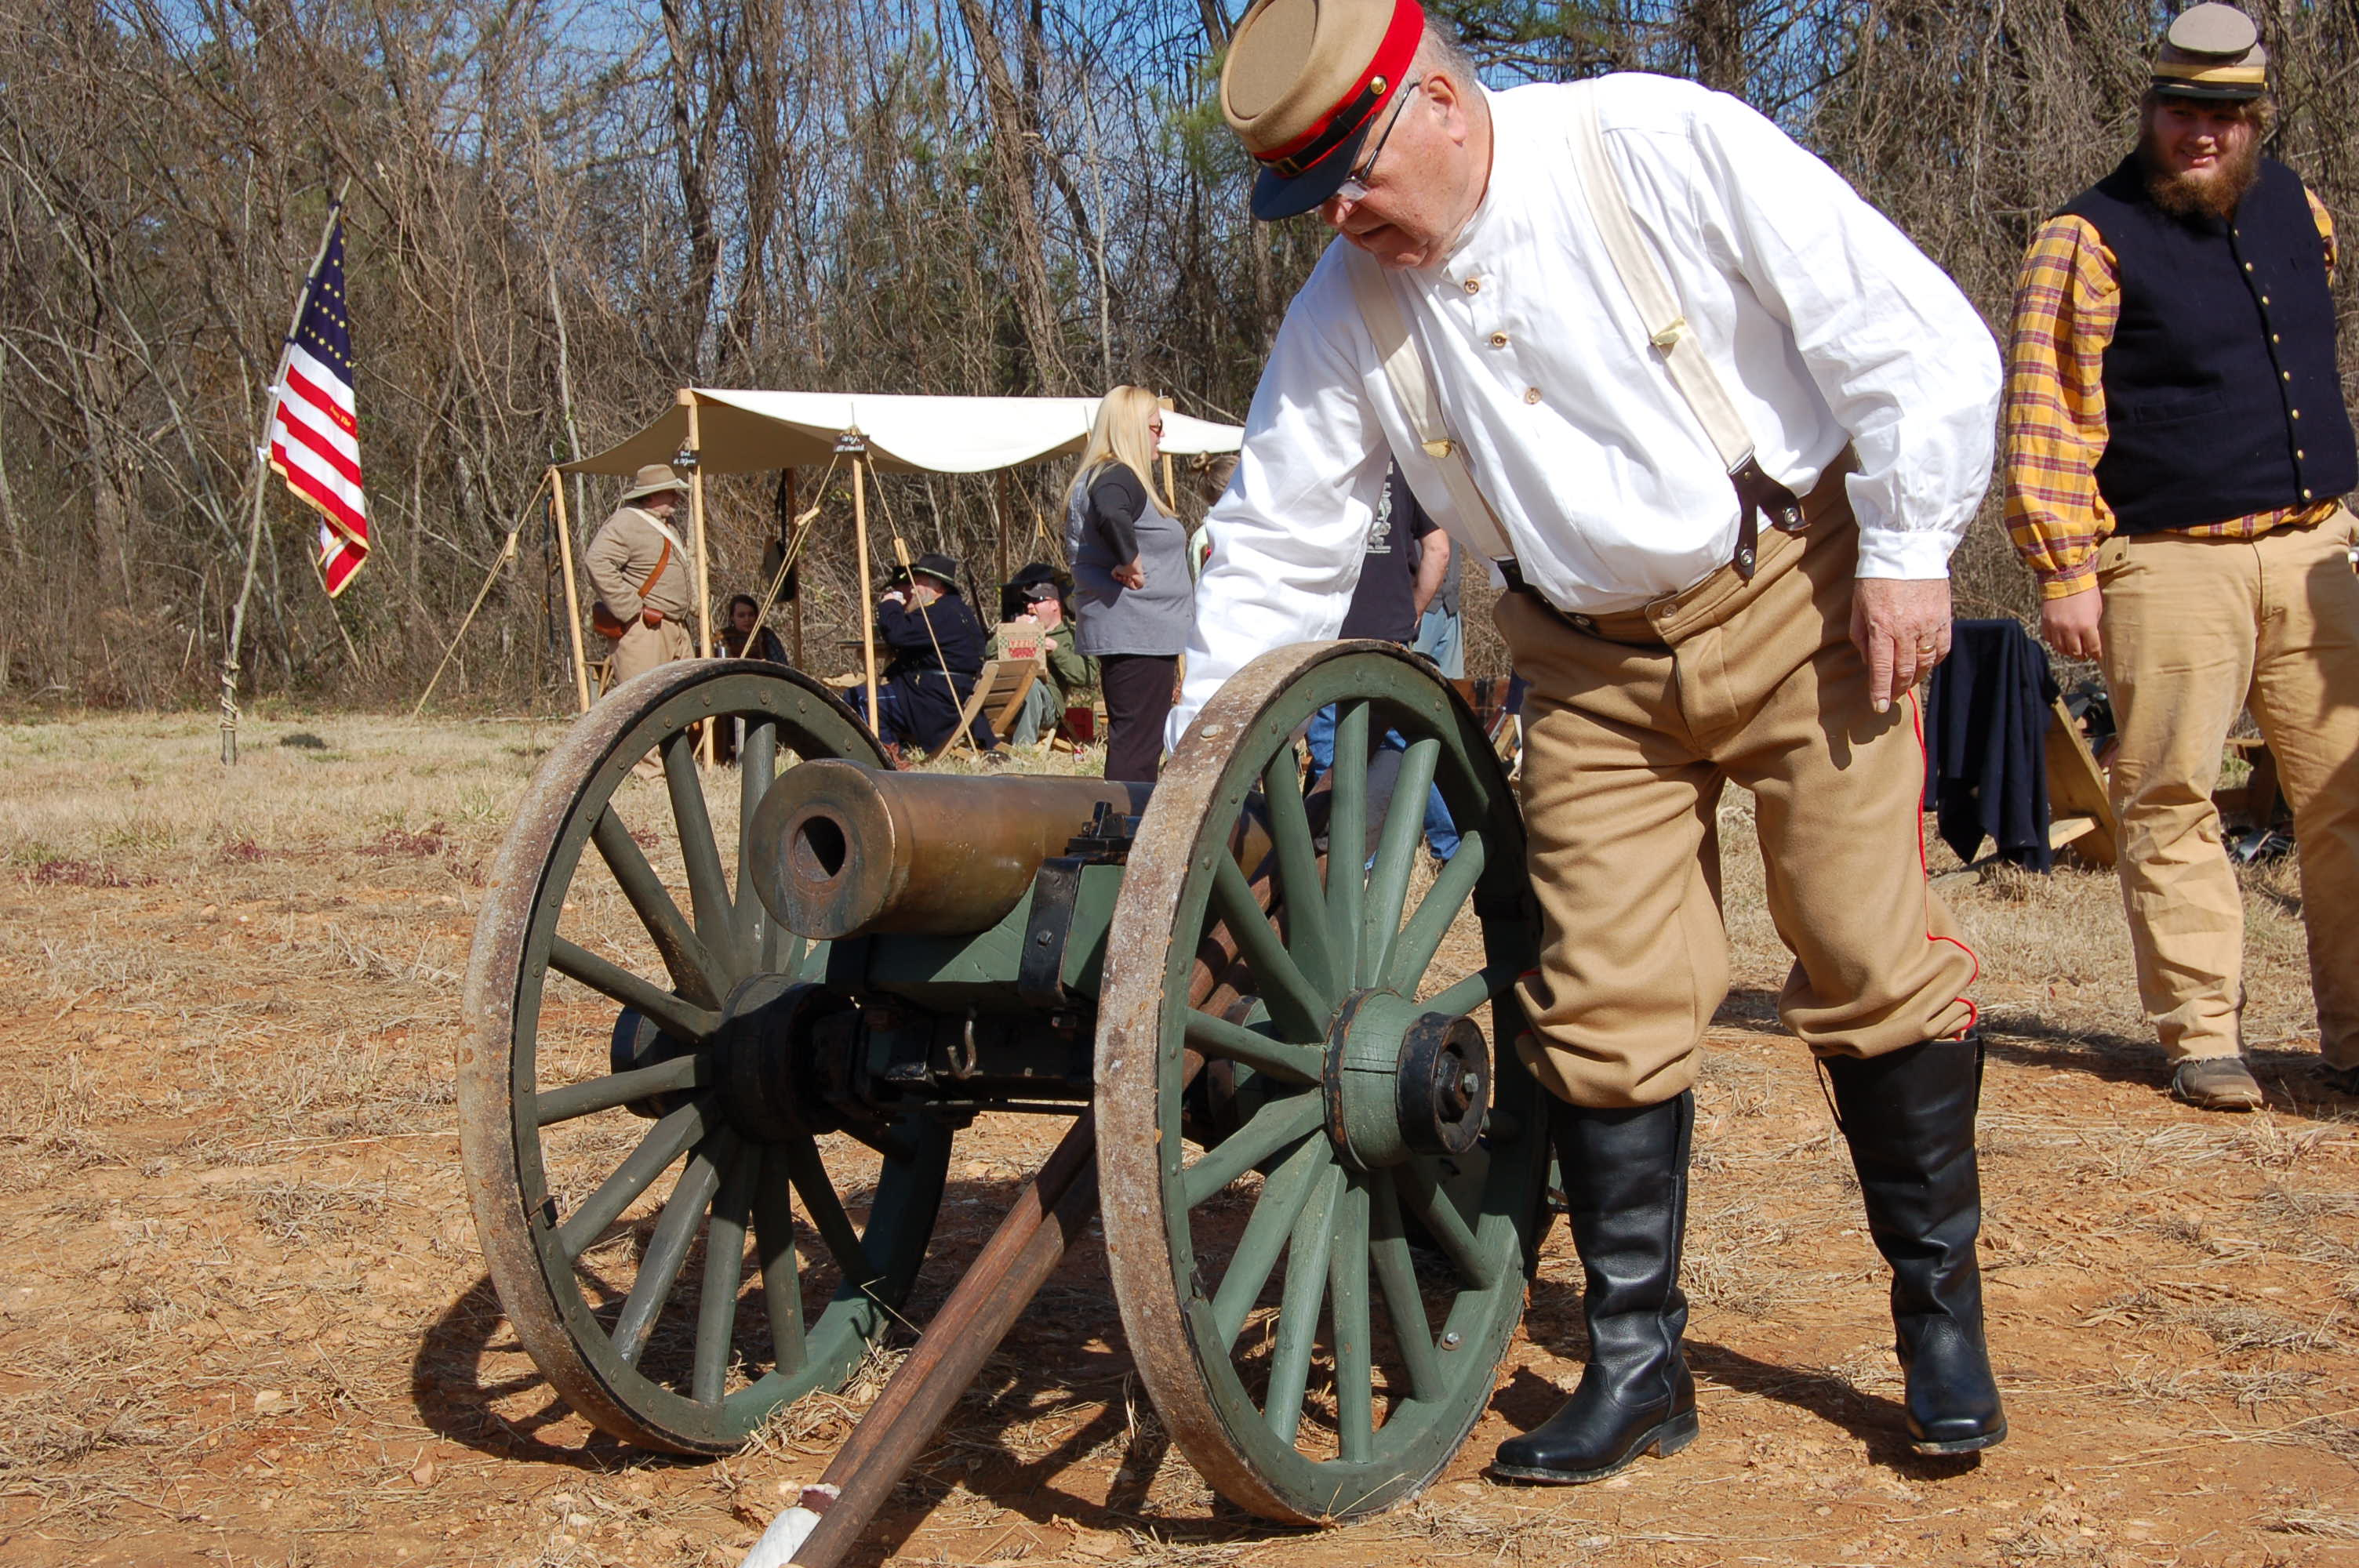 Civil War history comes to life at Old South Firearms and Trading Post in Argo